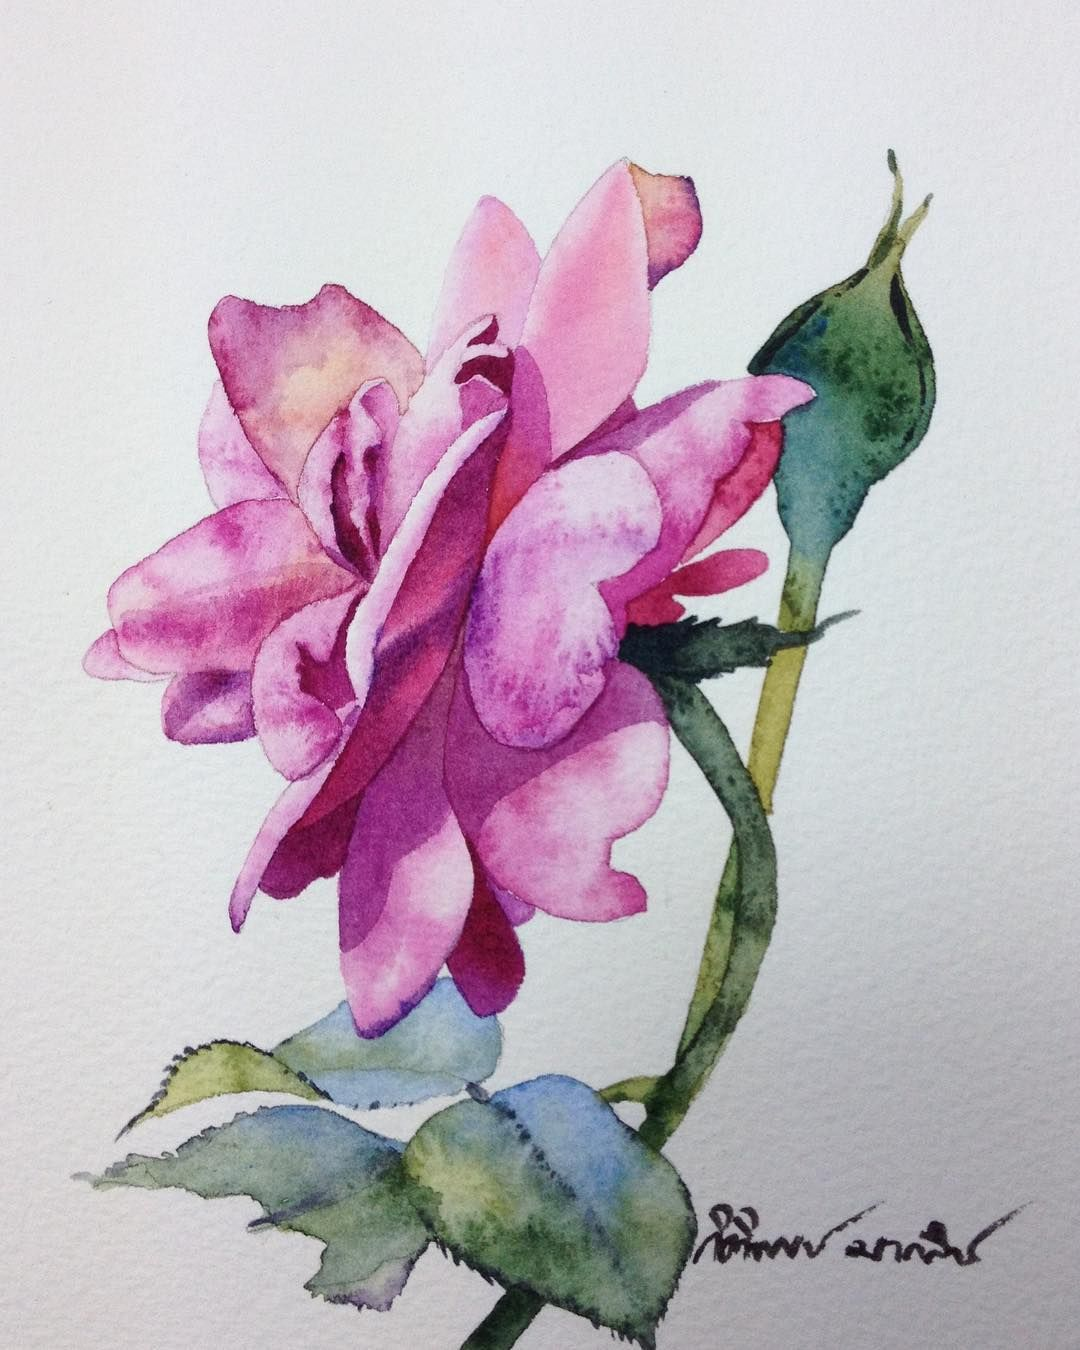 The Rose Painting Flowers Roses Aquarelle Aquarius Art